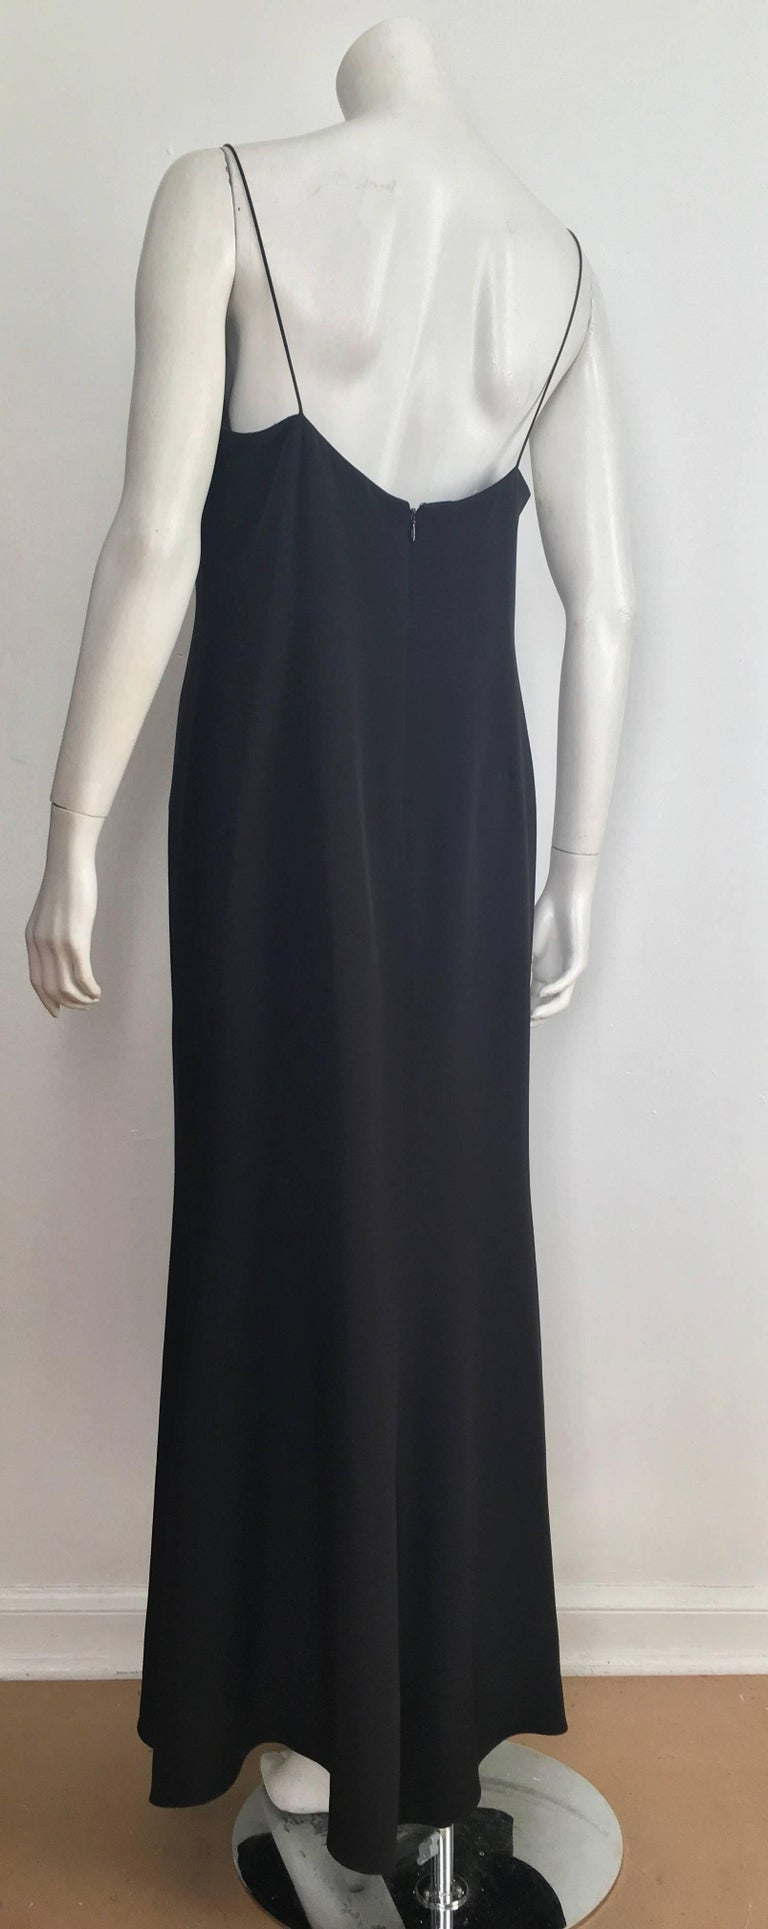 a9d98cc9a53 Women s or Men s Naeem Khan Black Silk Spaghetti Strap Evening Maxi Dress  Size 12. For